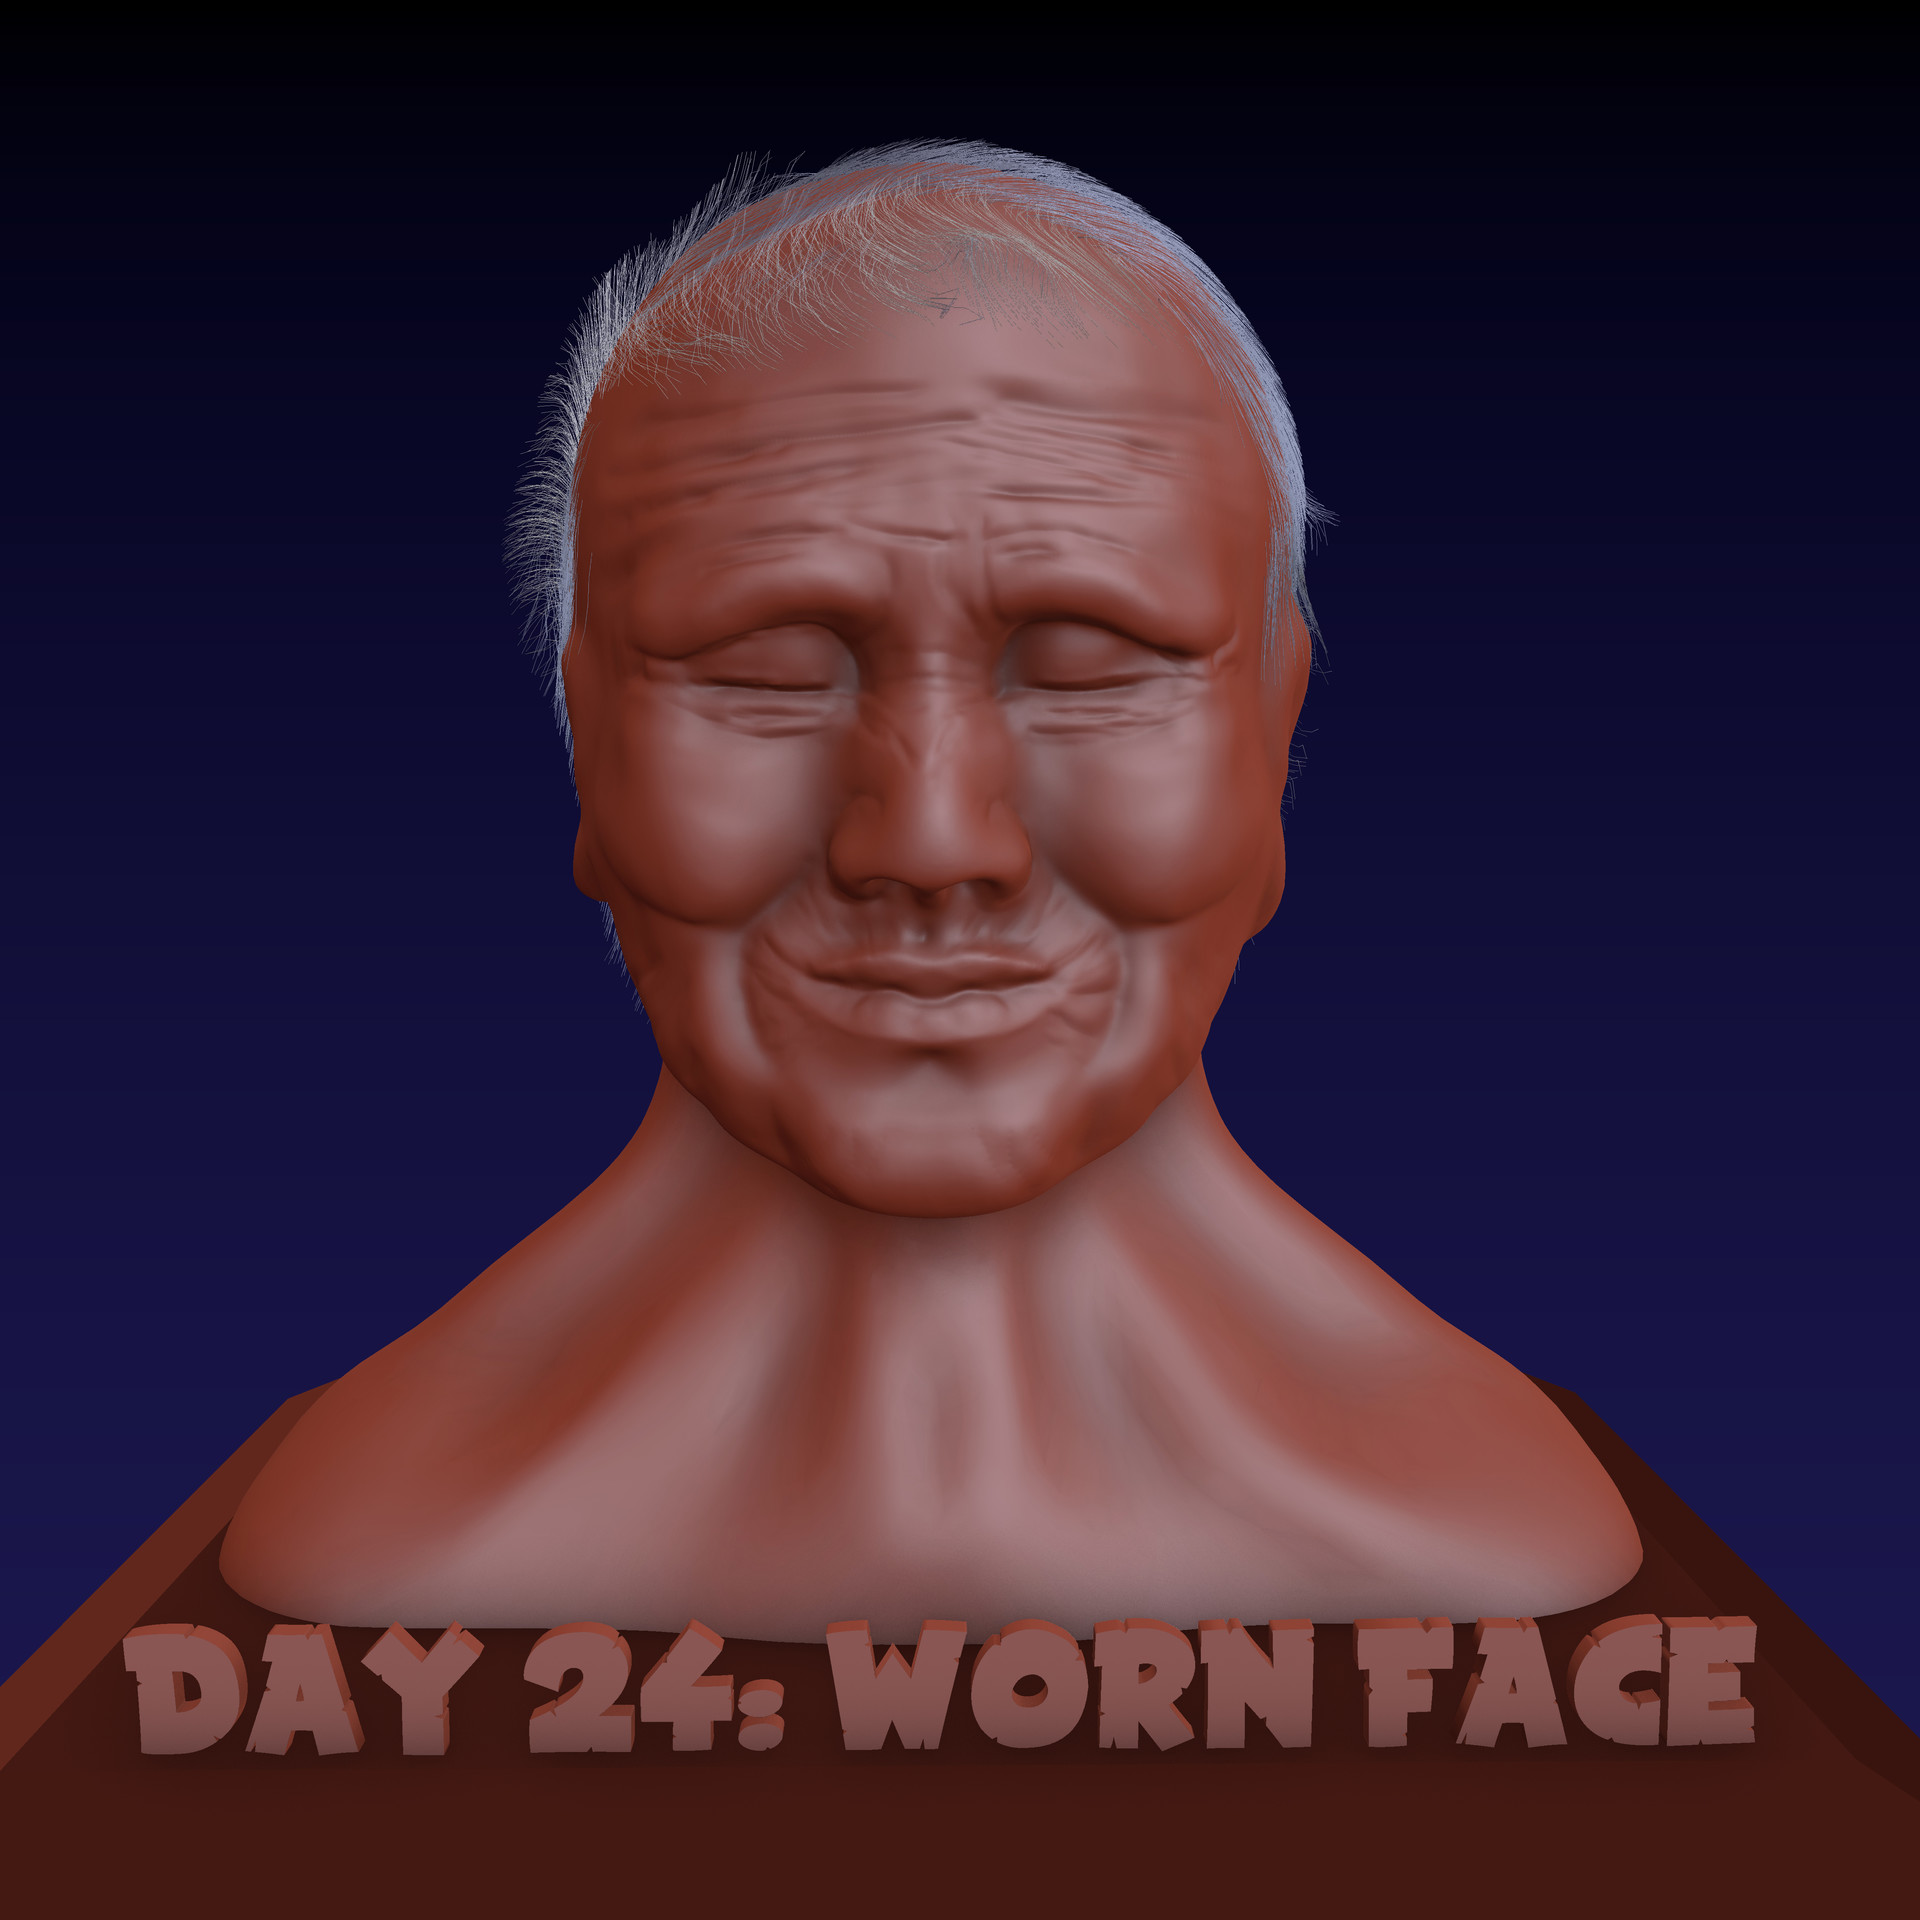 Johna aae 24 worn face5